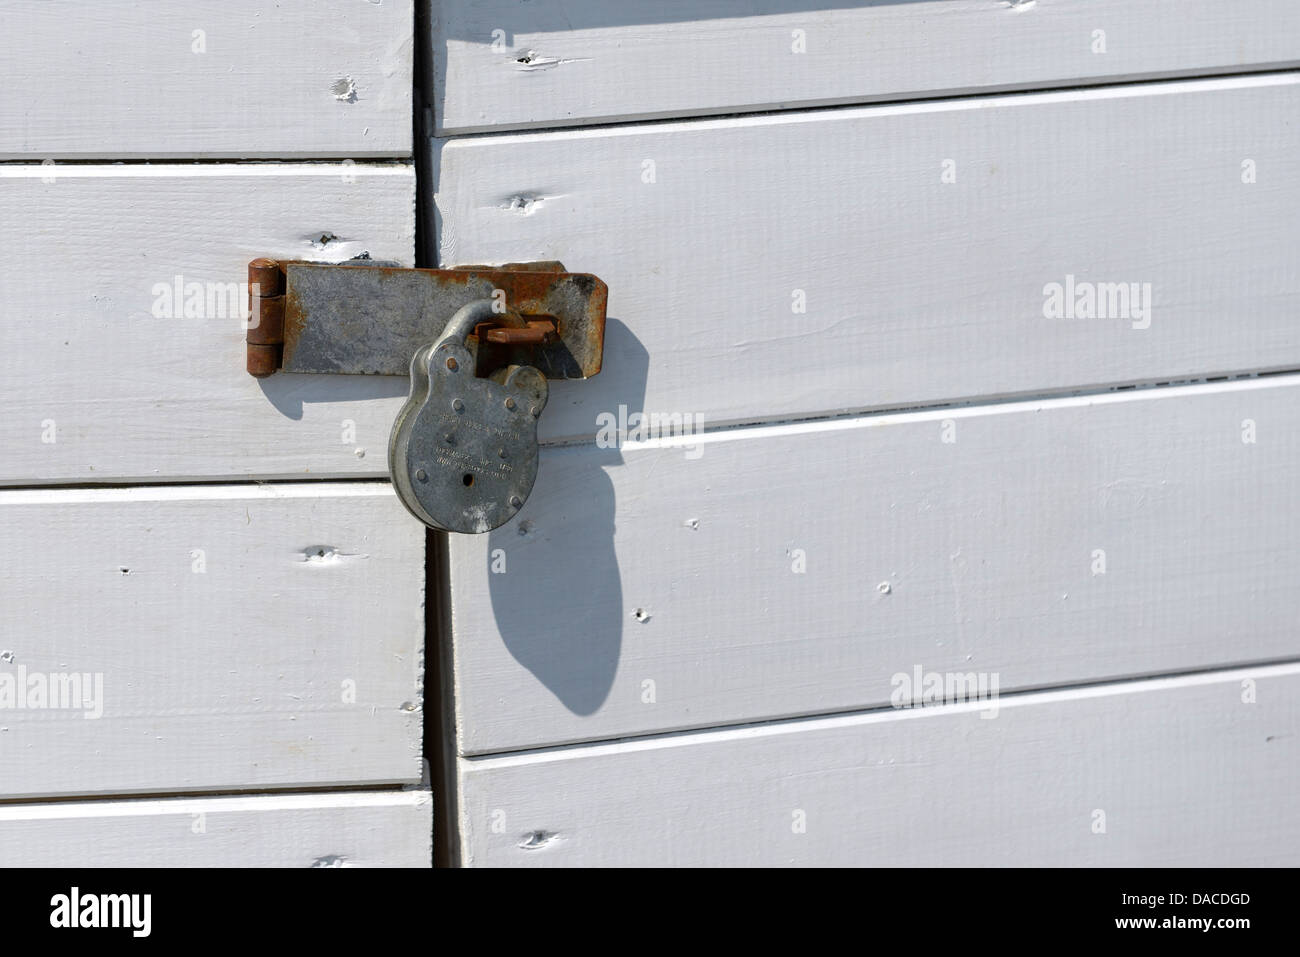 A henry squire padlock attached to a hasp and staple to keep some doors closed - Stock Image